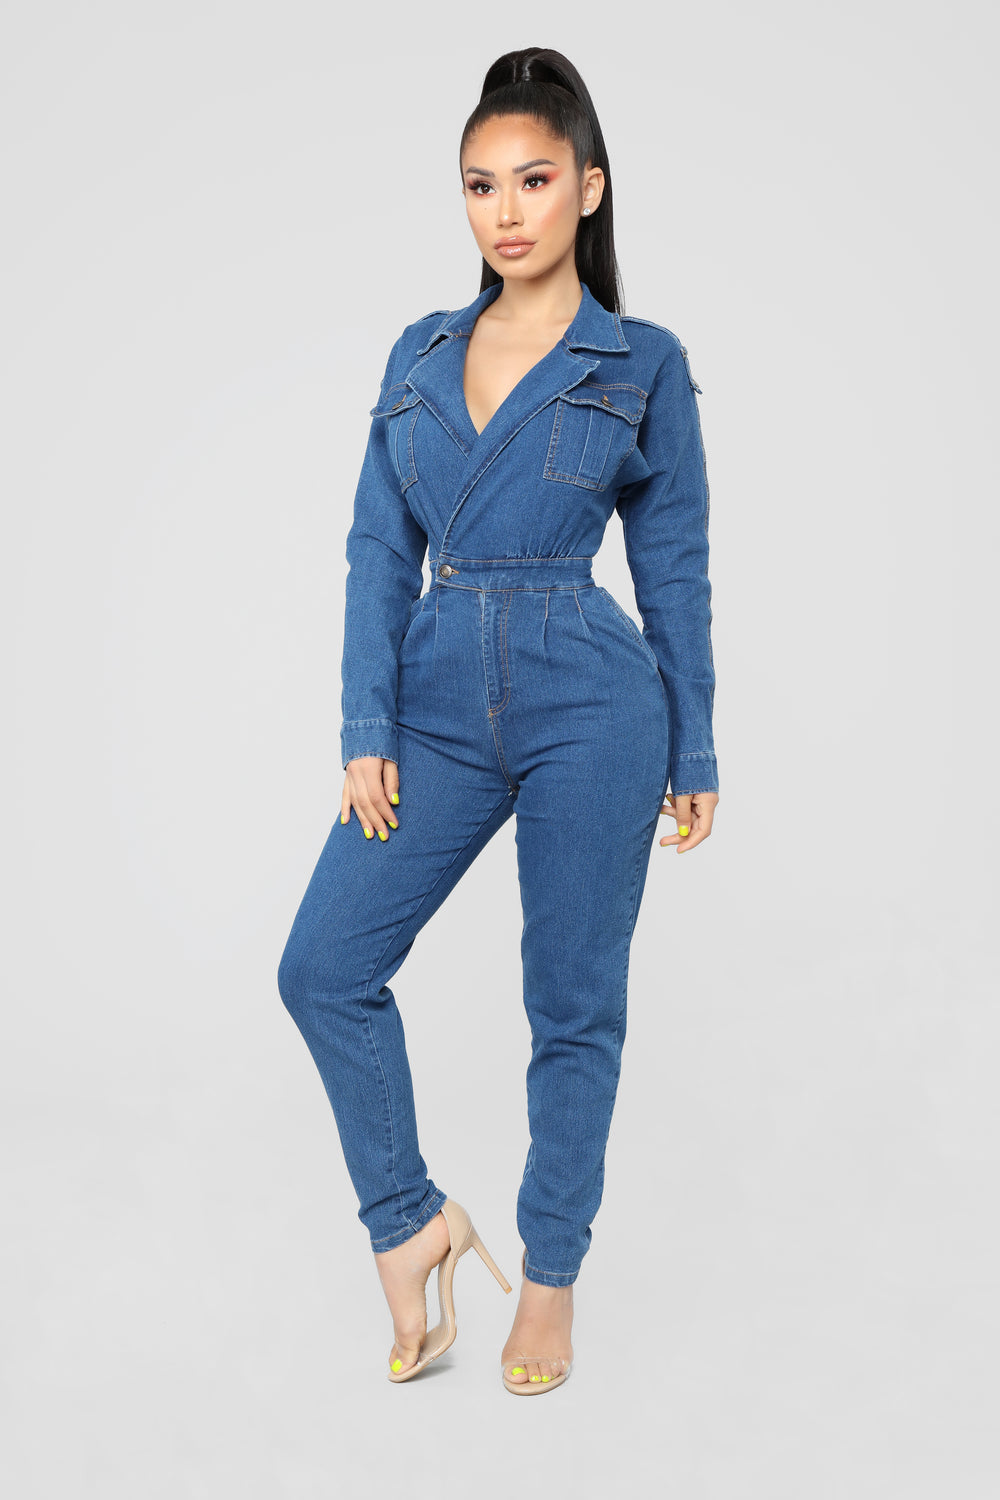 Timeless Fashion Jumpsuit - Medium Wash